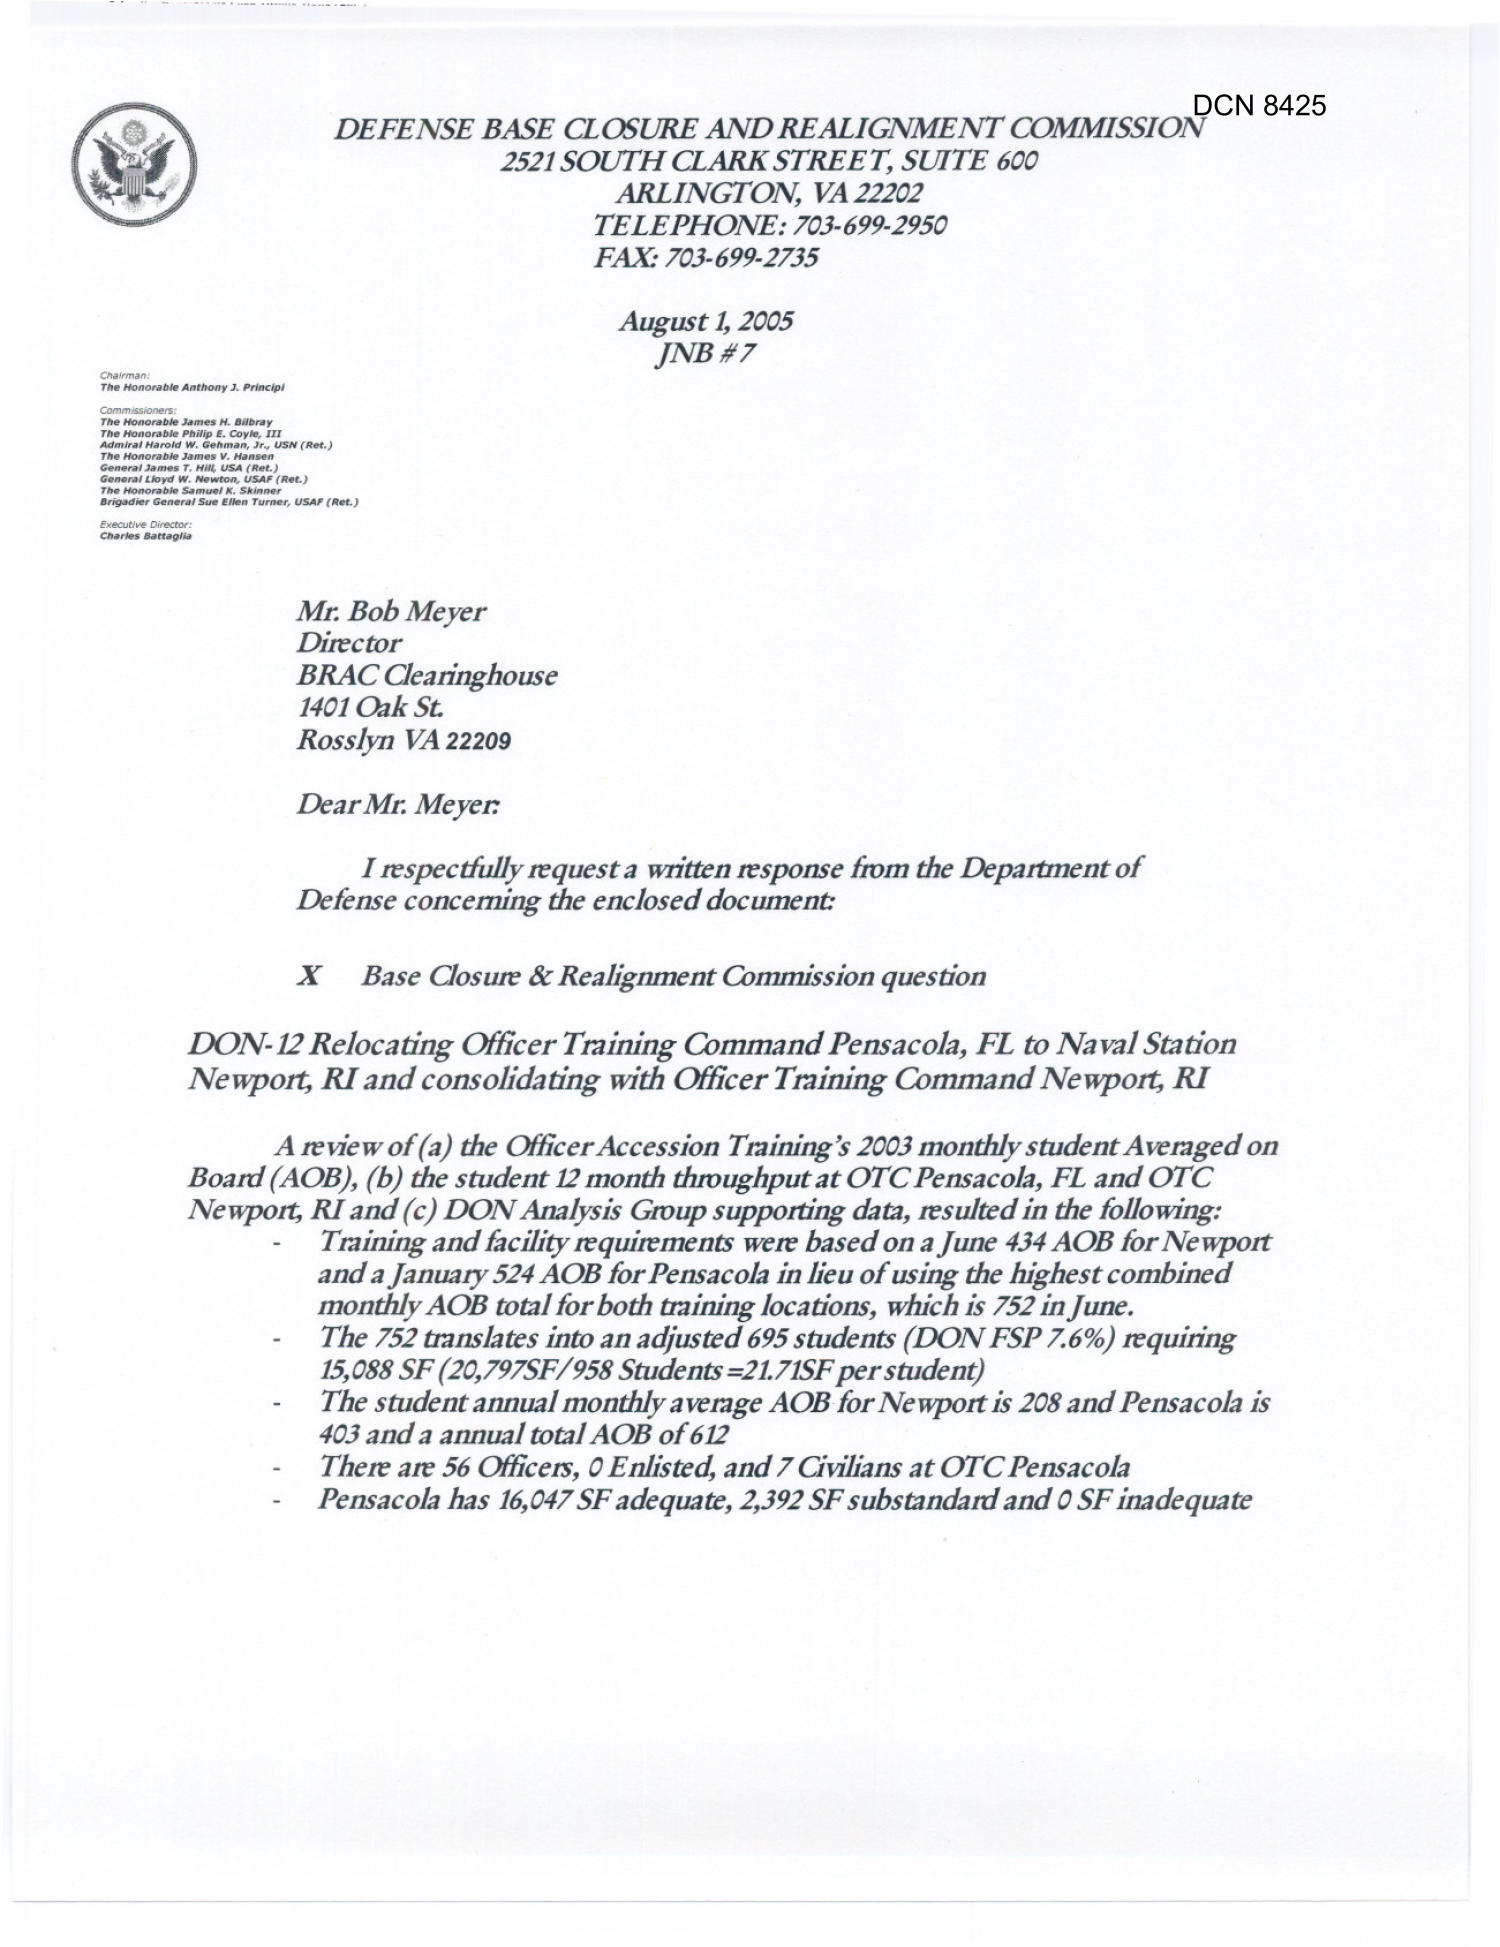 Department of Defense Clearinghouse Response: DoD Clearinghouse Response to a letter from the BRAC Commission regarding consolidating Officer Training from Pensacola, FL to Naval Station Newport, RI                                                                                                      [Sequence #]: 1 of 4